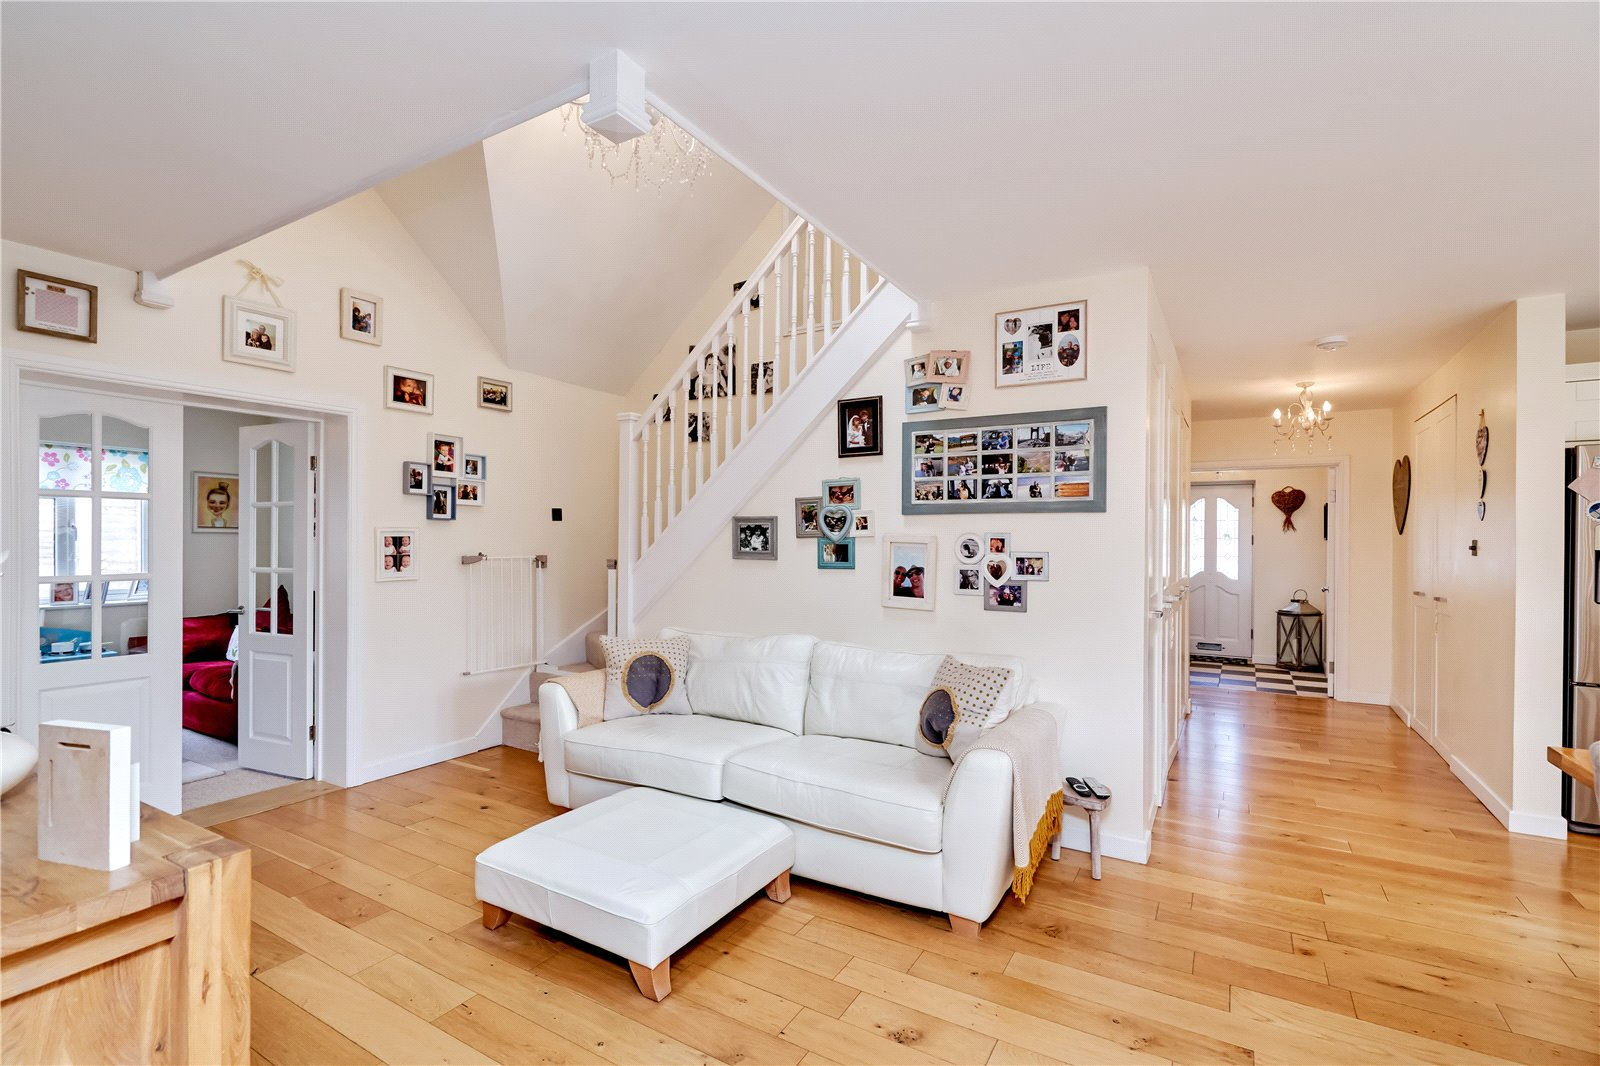 4 bed house for sale in Welwyn, AL6 0QG 4